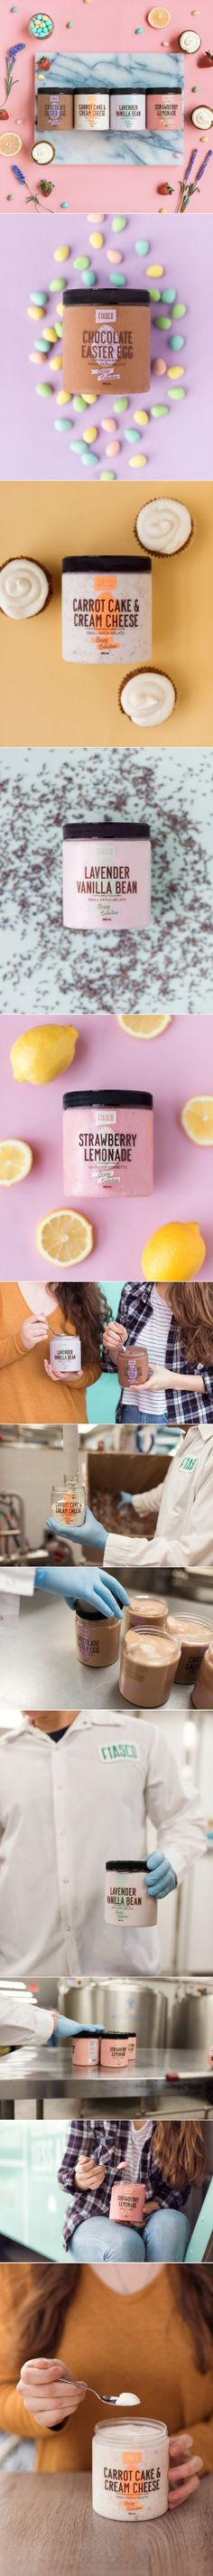 Get Your Gelato Fix With Fiasco's Adorable Spring Collection — The Dieline | Packaging & Branding Design & Innovation News